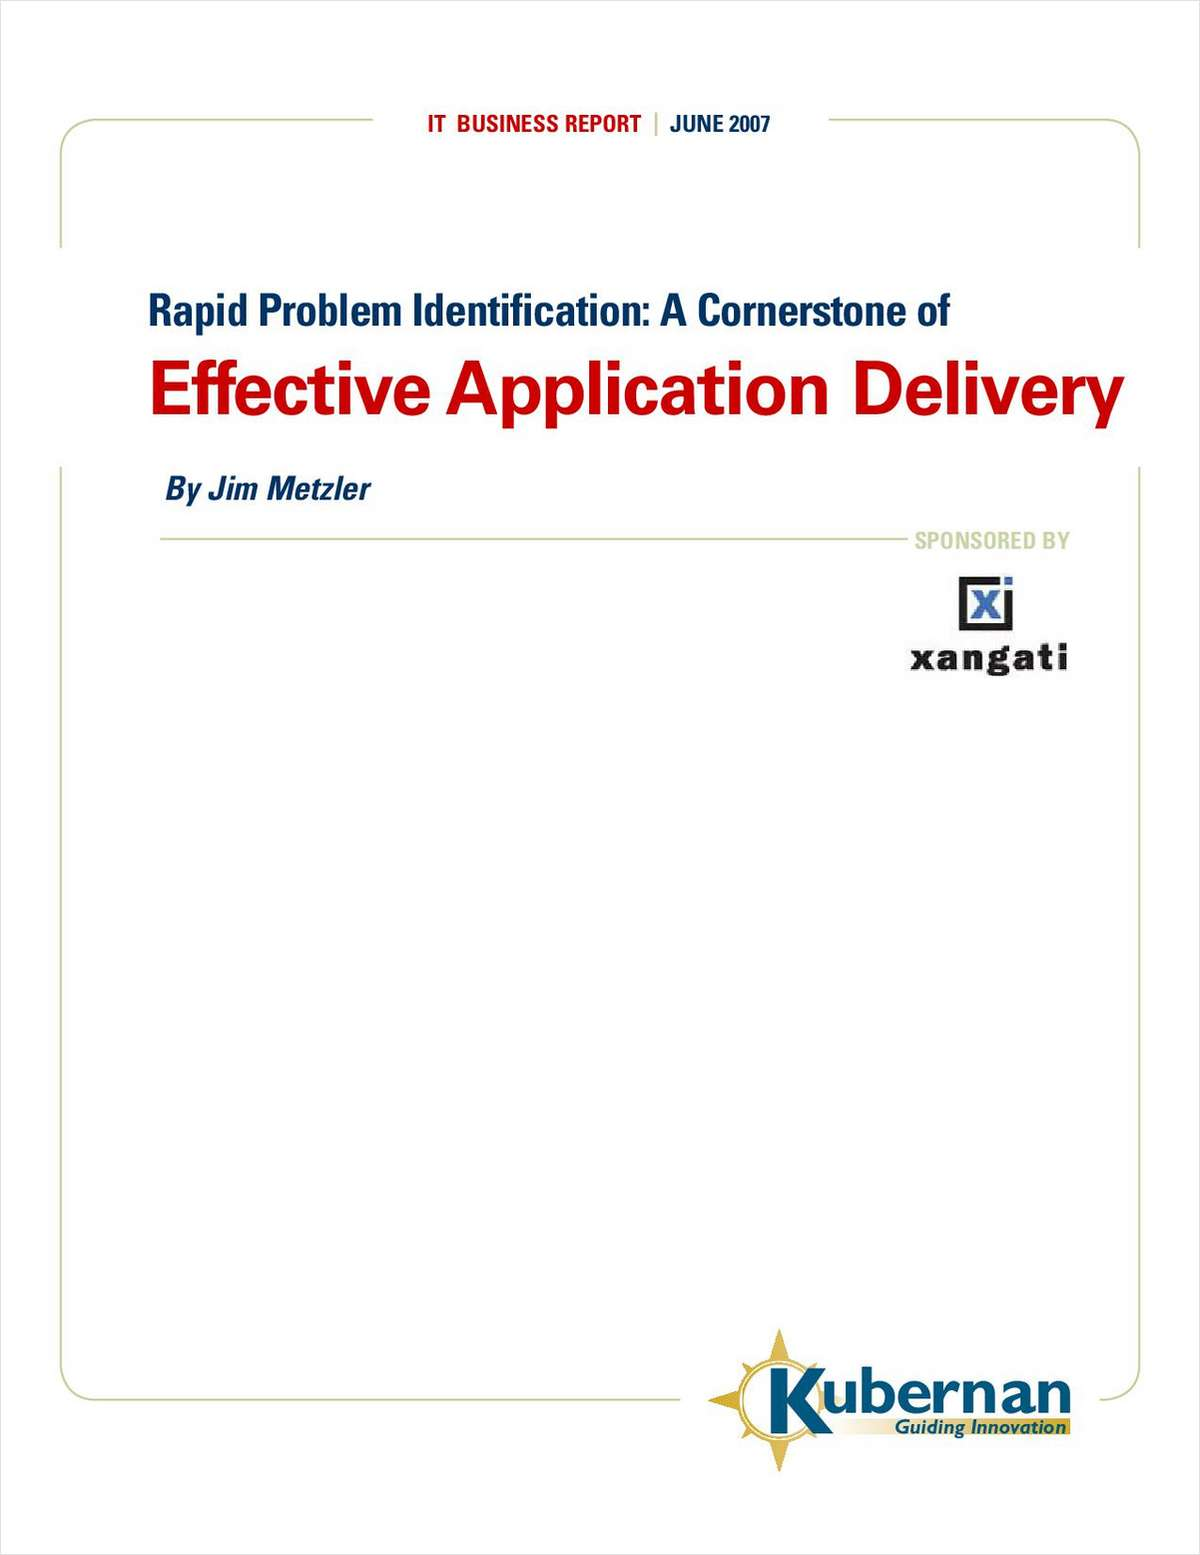 Rapid Problem Identification: A Cornerstone of Effective Application Delivery